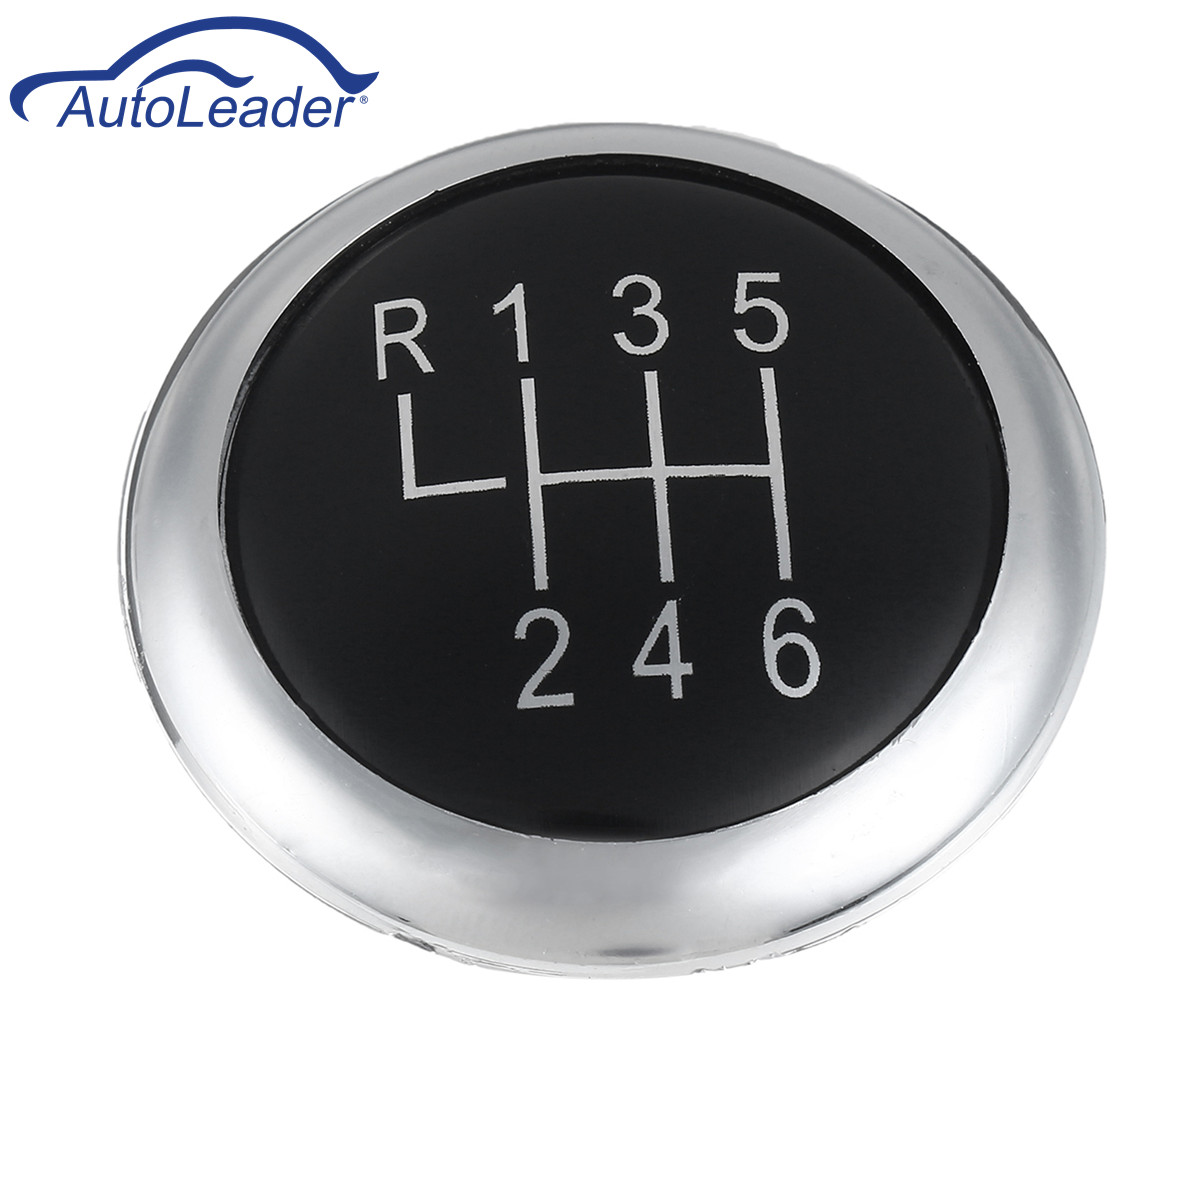 New 6 Speed Gear Knob Stick Badge Emblem Trim Cap Cover For VW Passat B6 2005-2011 B7 2010-2014 CC 2009-2012 6 44 2011